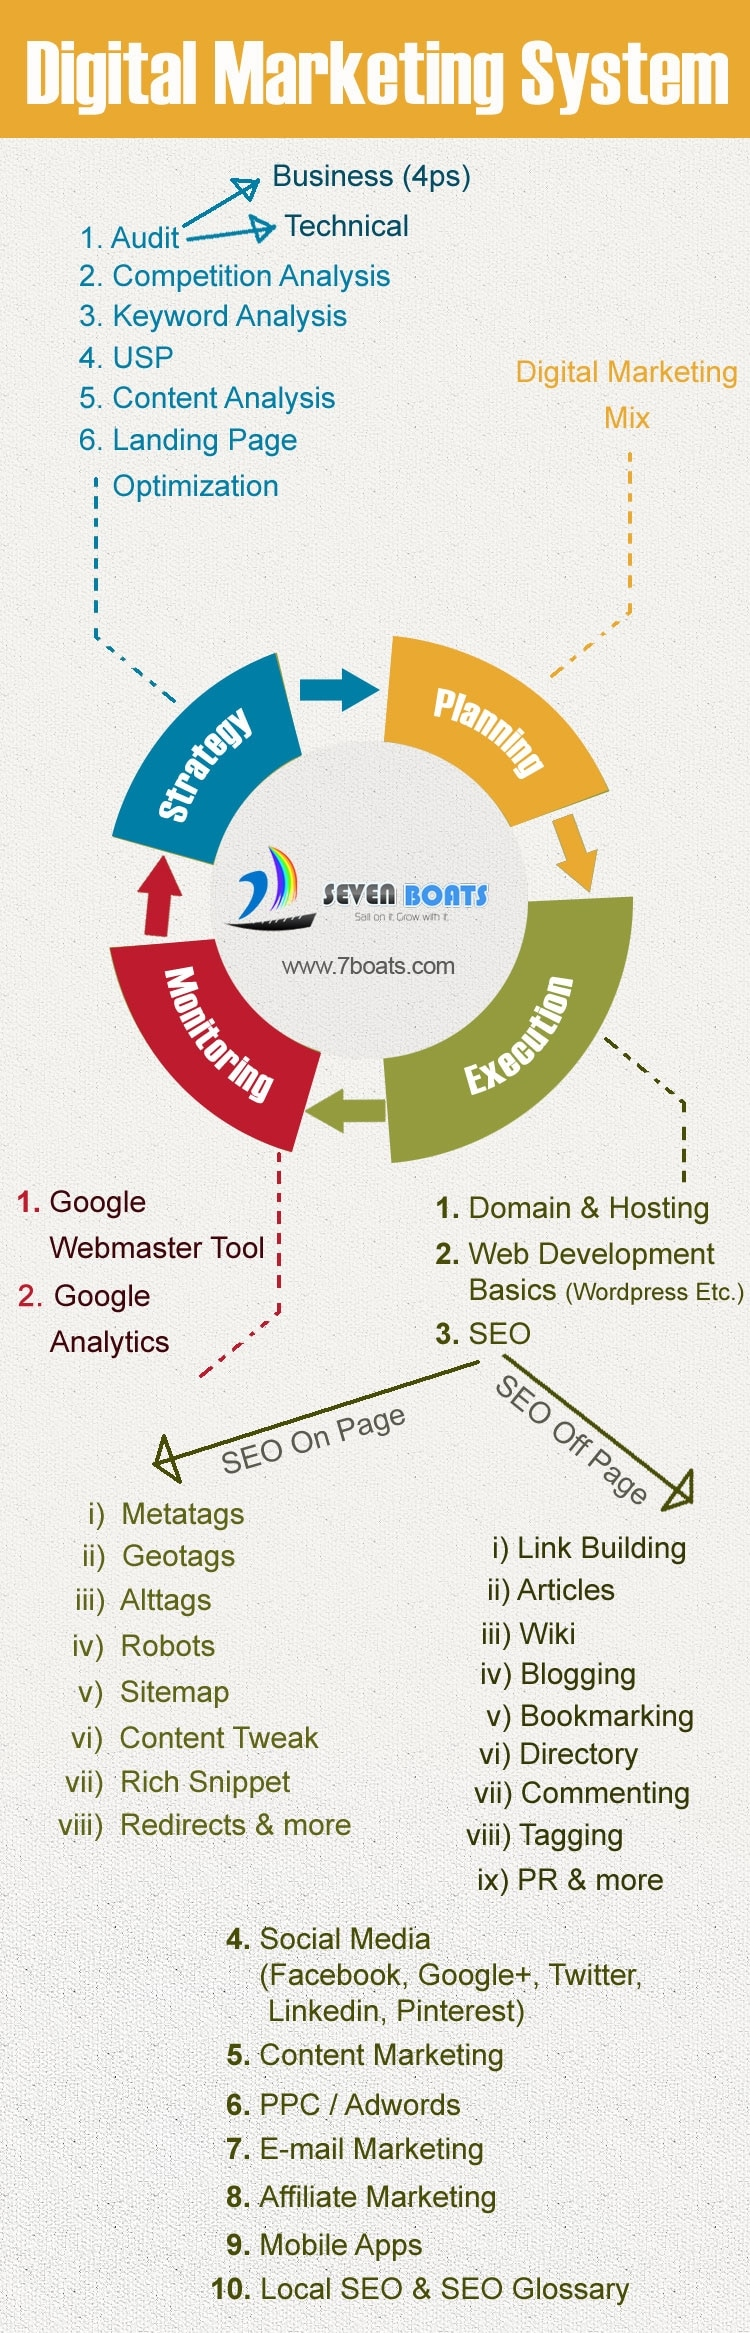 Flowchart of Digital marketing system for beginners by Seven Boats Info-System